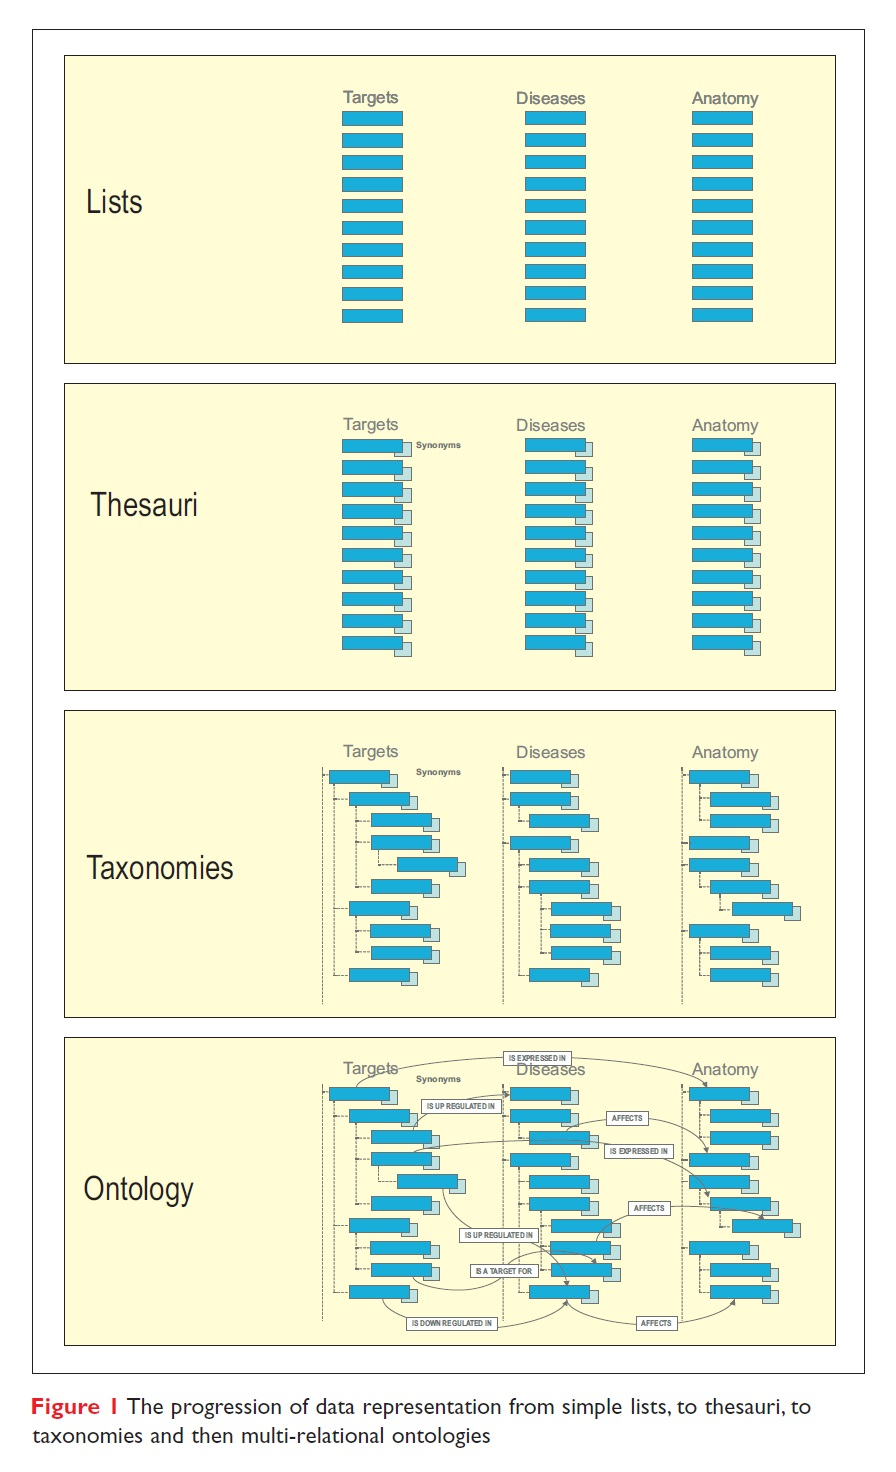 Figure 1 The progression of data representation from simple lists, to thesauri, to taxonomies and then multi-relational ontologies